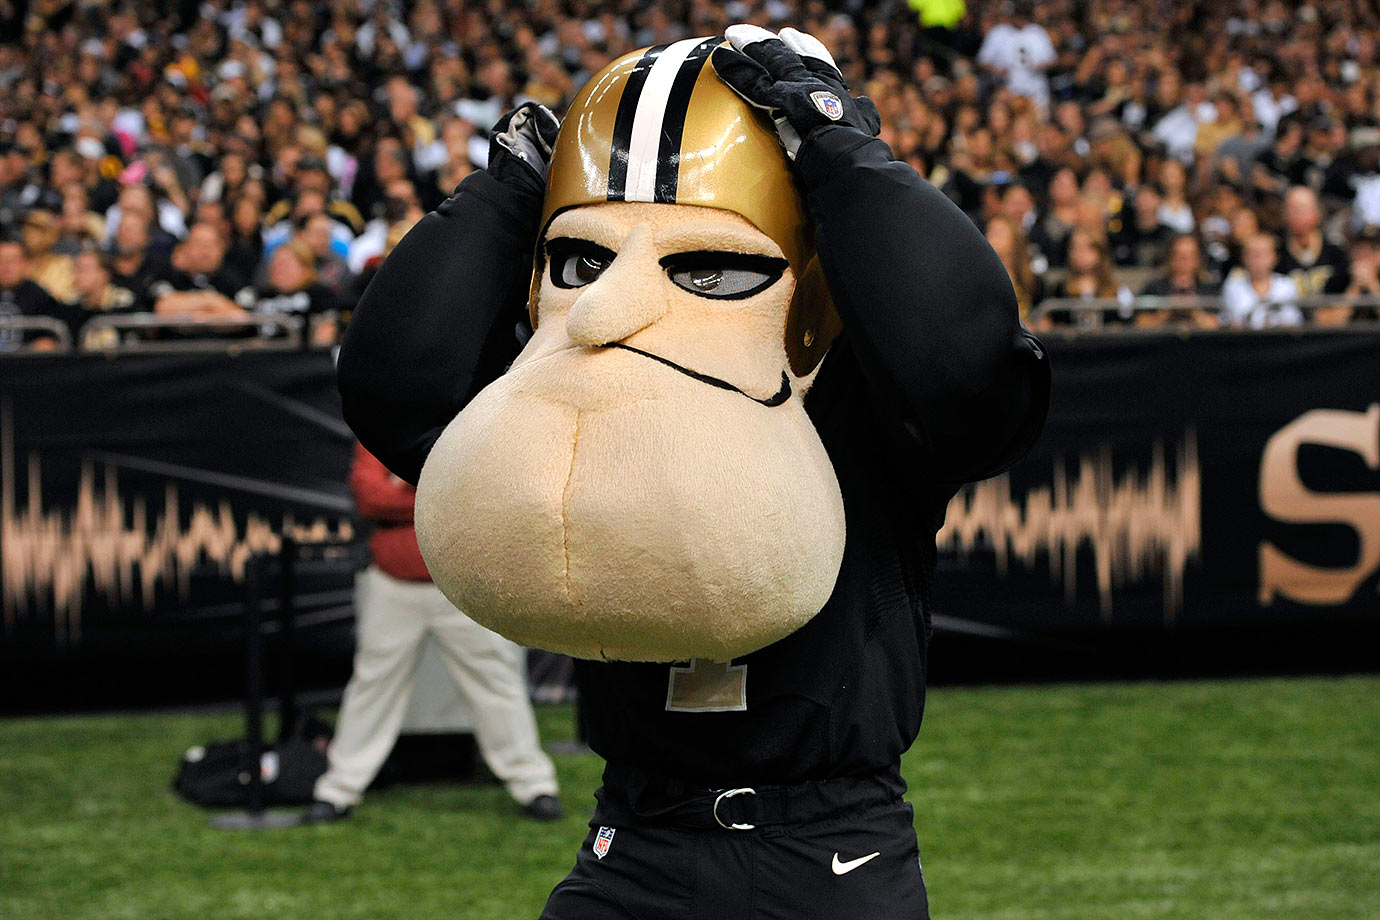 """Once again, a little like the Redskins, this is a tough mascot to create that evokes anything to do with the team name. When was the last time you saw a tough saint that didn't evoke images of the bad guy from """"The Da Vinci Code""""? But Sir Saint!?! He's like the love child of Peter Griffin and Richard Nixon – neither of which, I might add, should be considered for sainthood!"""